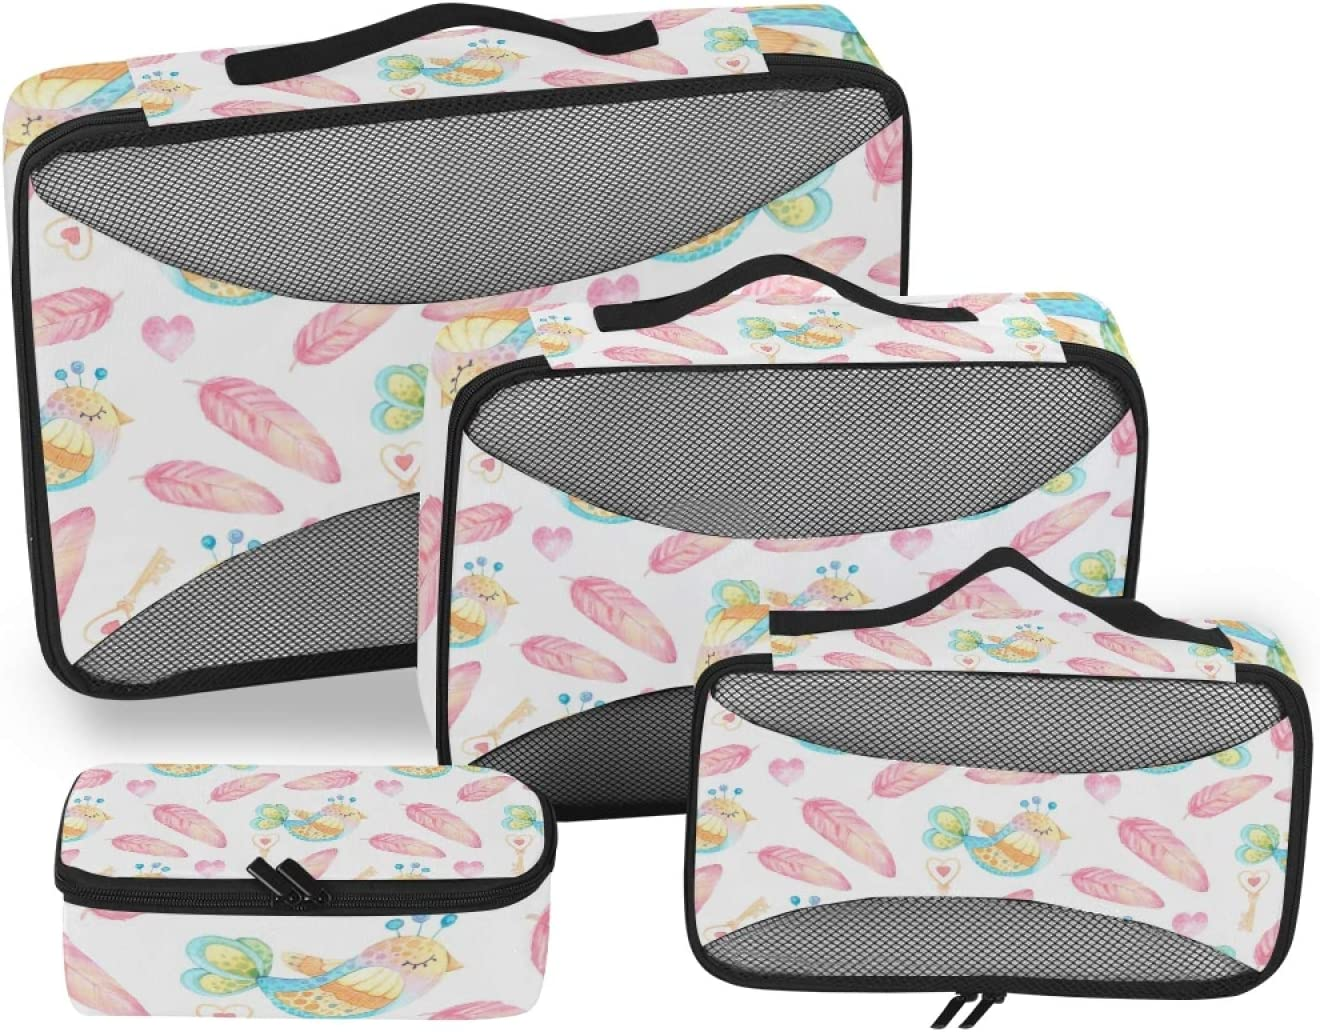 Feathers And Birds Packing Cubes 4-Pcs Free shipping / New Accessor Brand new Organizer Travel